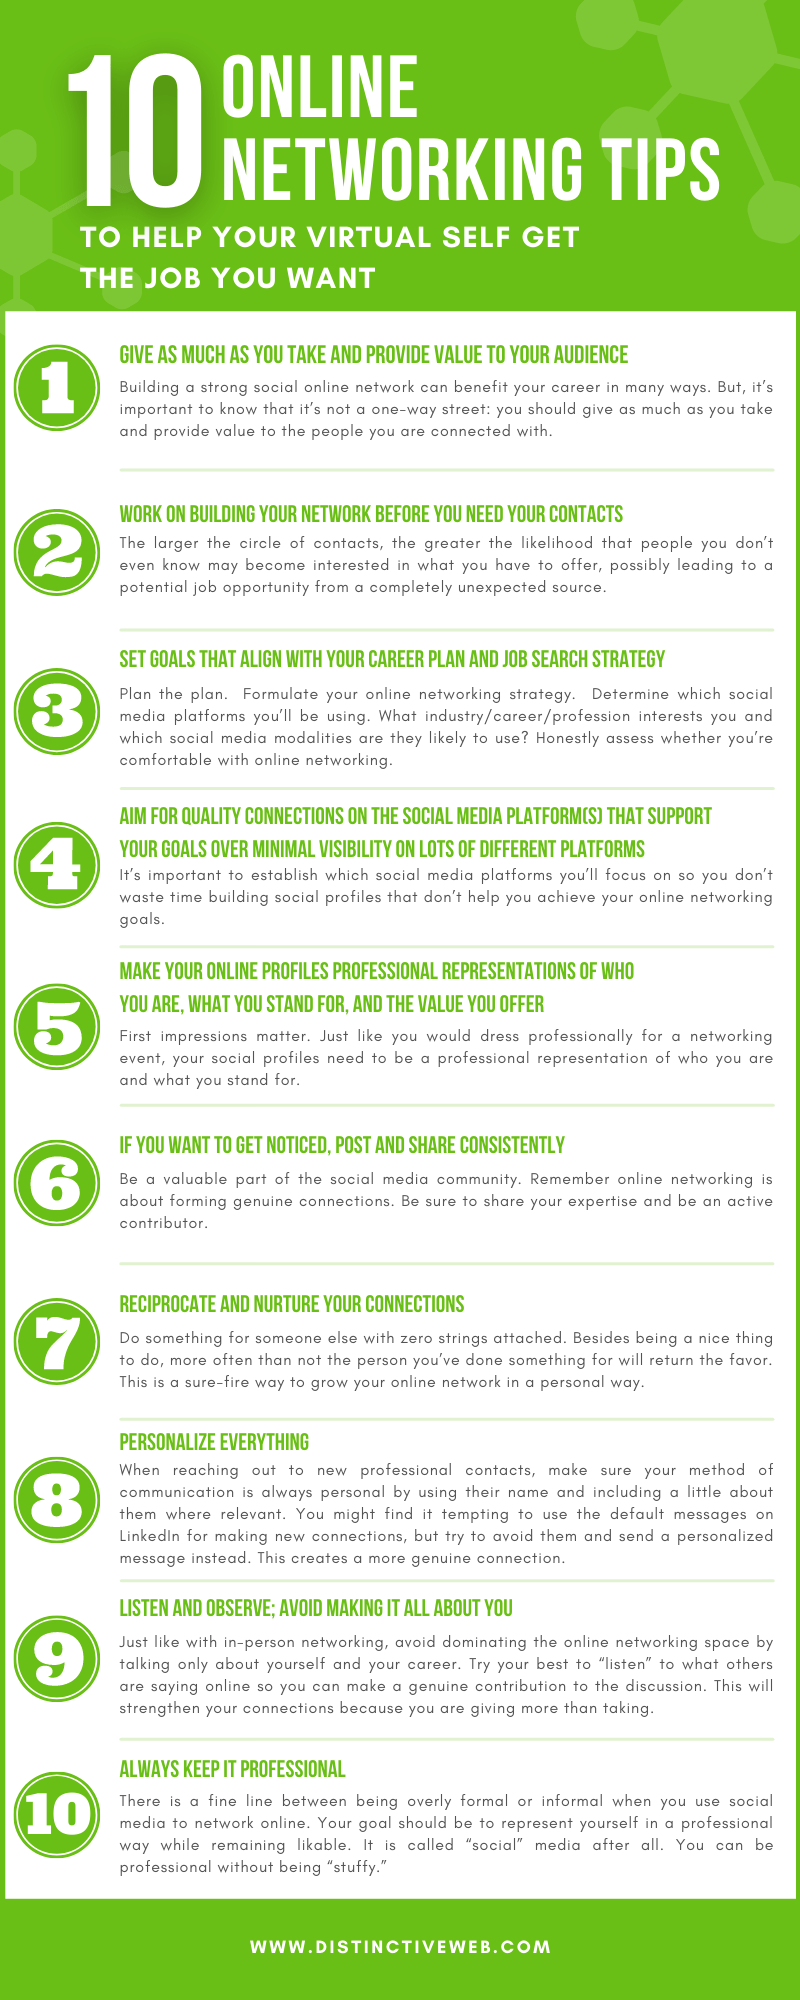 10 Online Networking Tips To Help Your Virtual Self Get The Job You Want Infographic